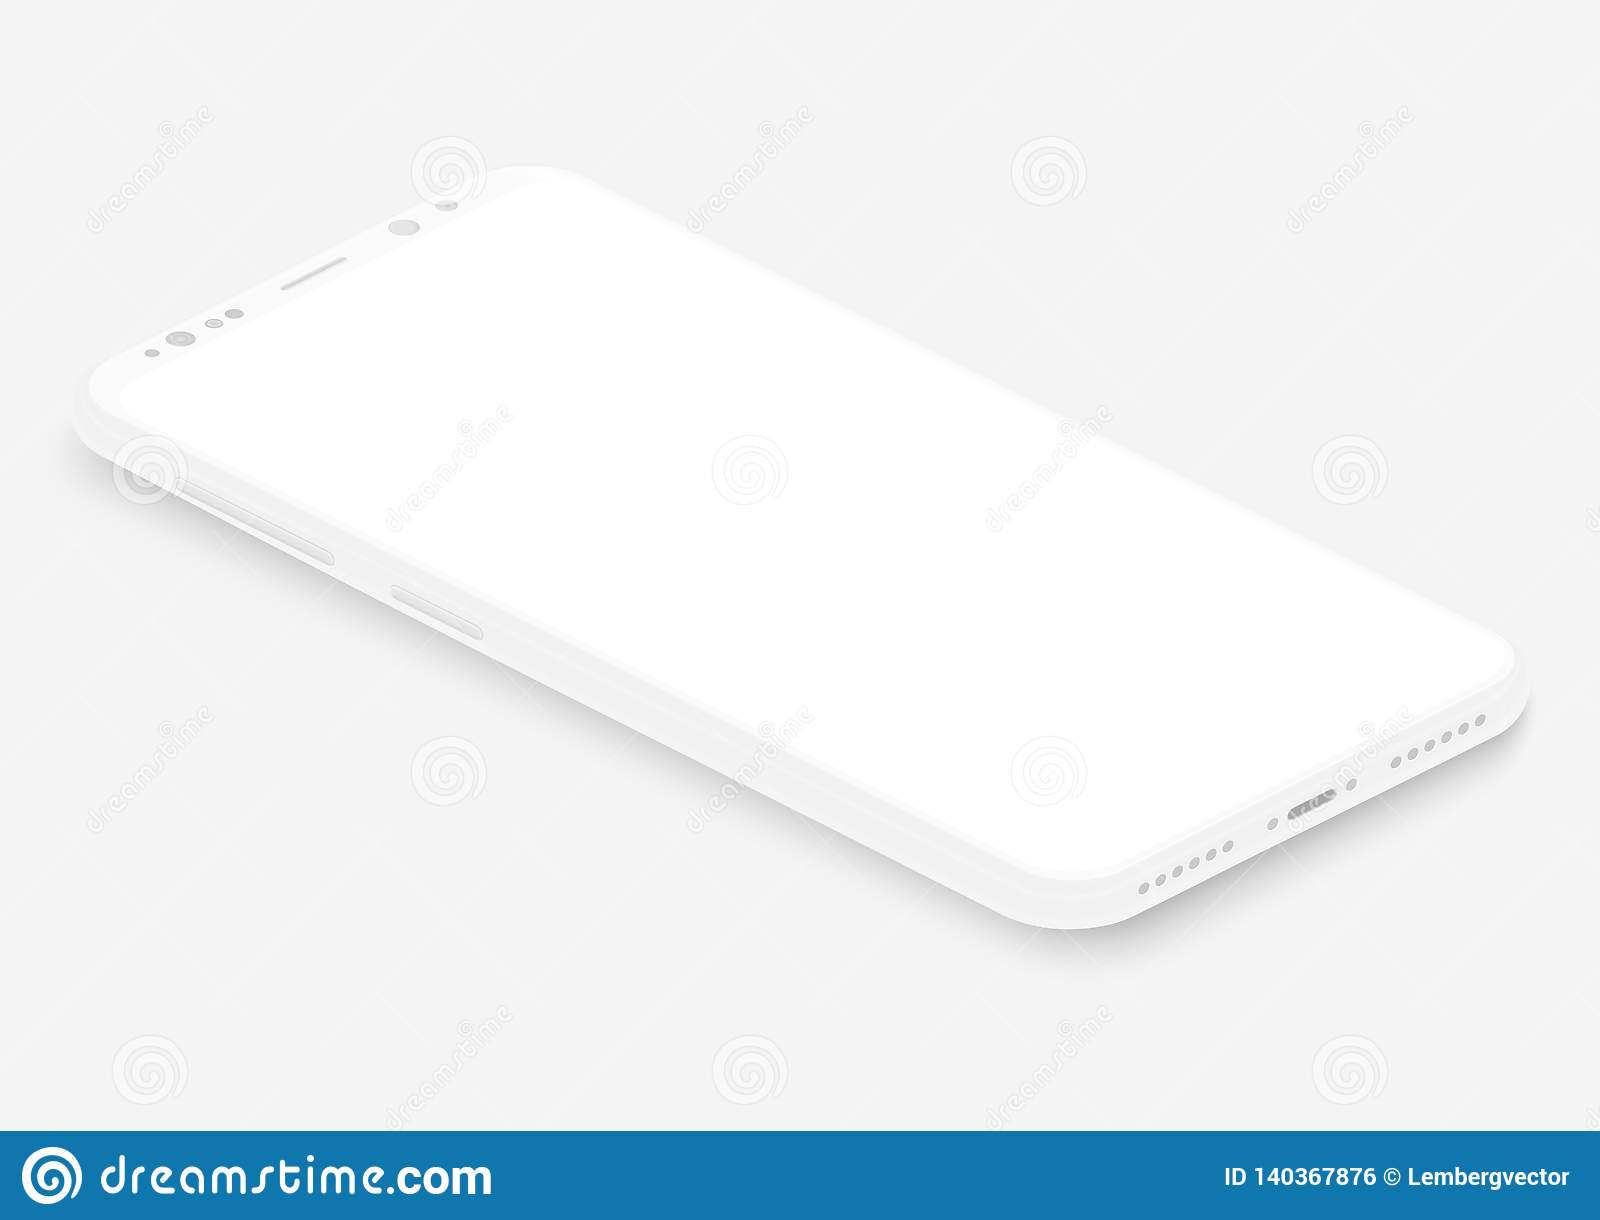 Isometric white vector smartphone. 3d realistic empty screen phone template for inserting any UI interface, test or